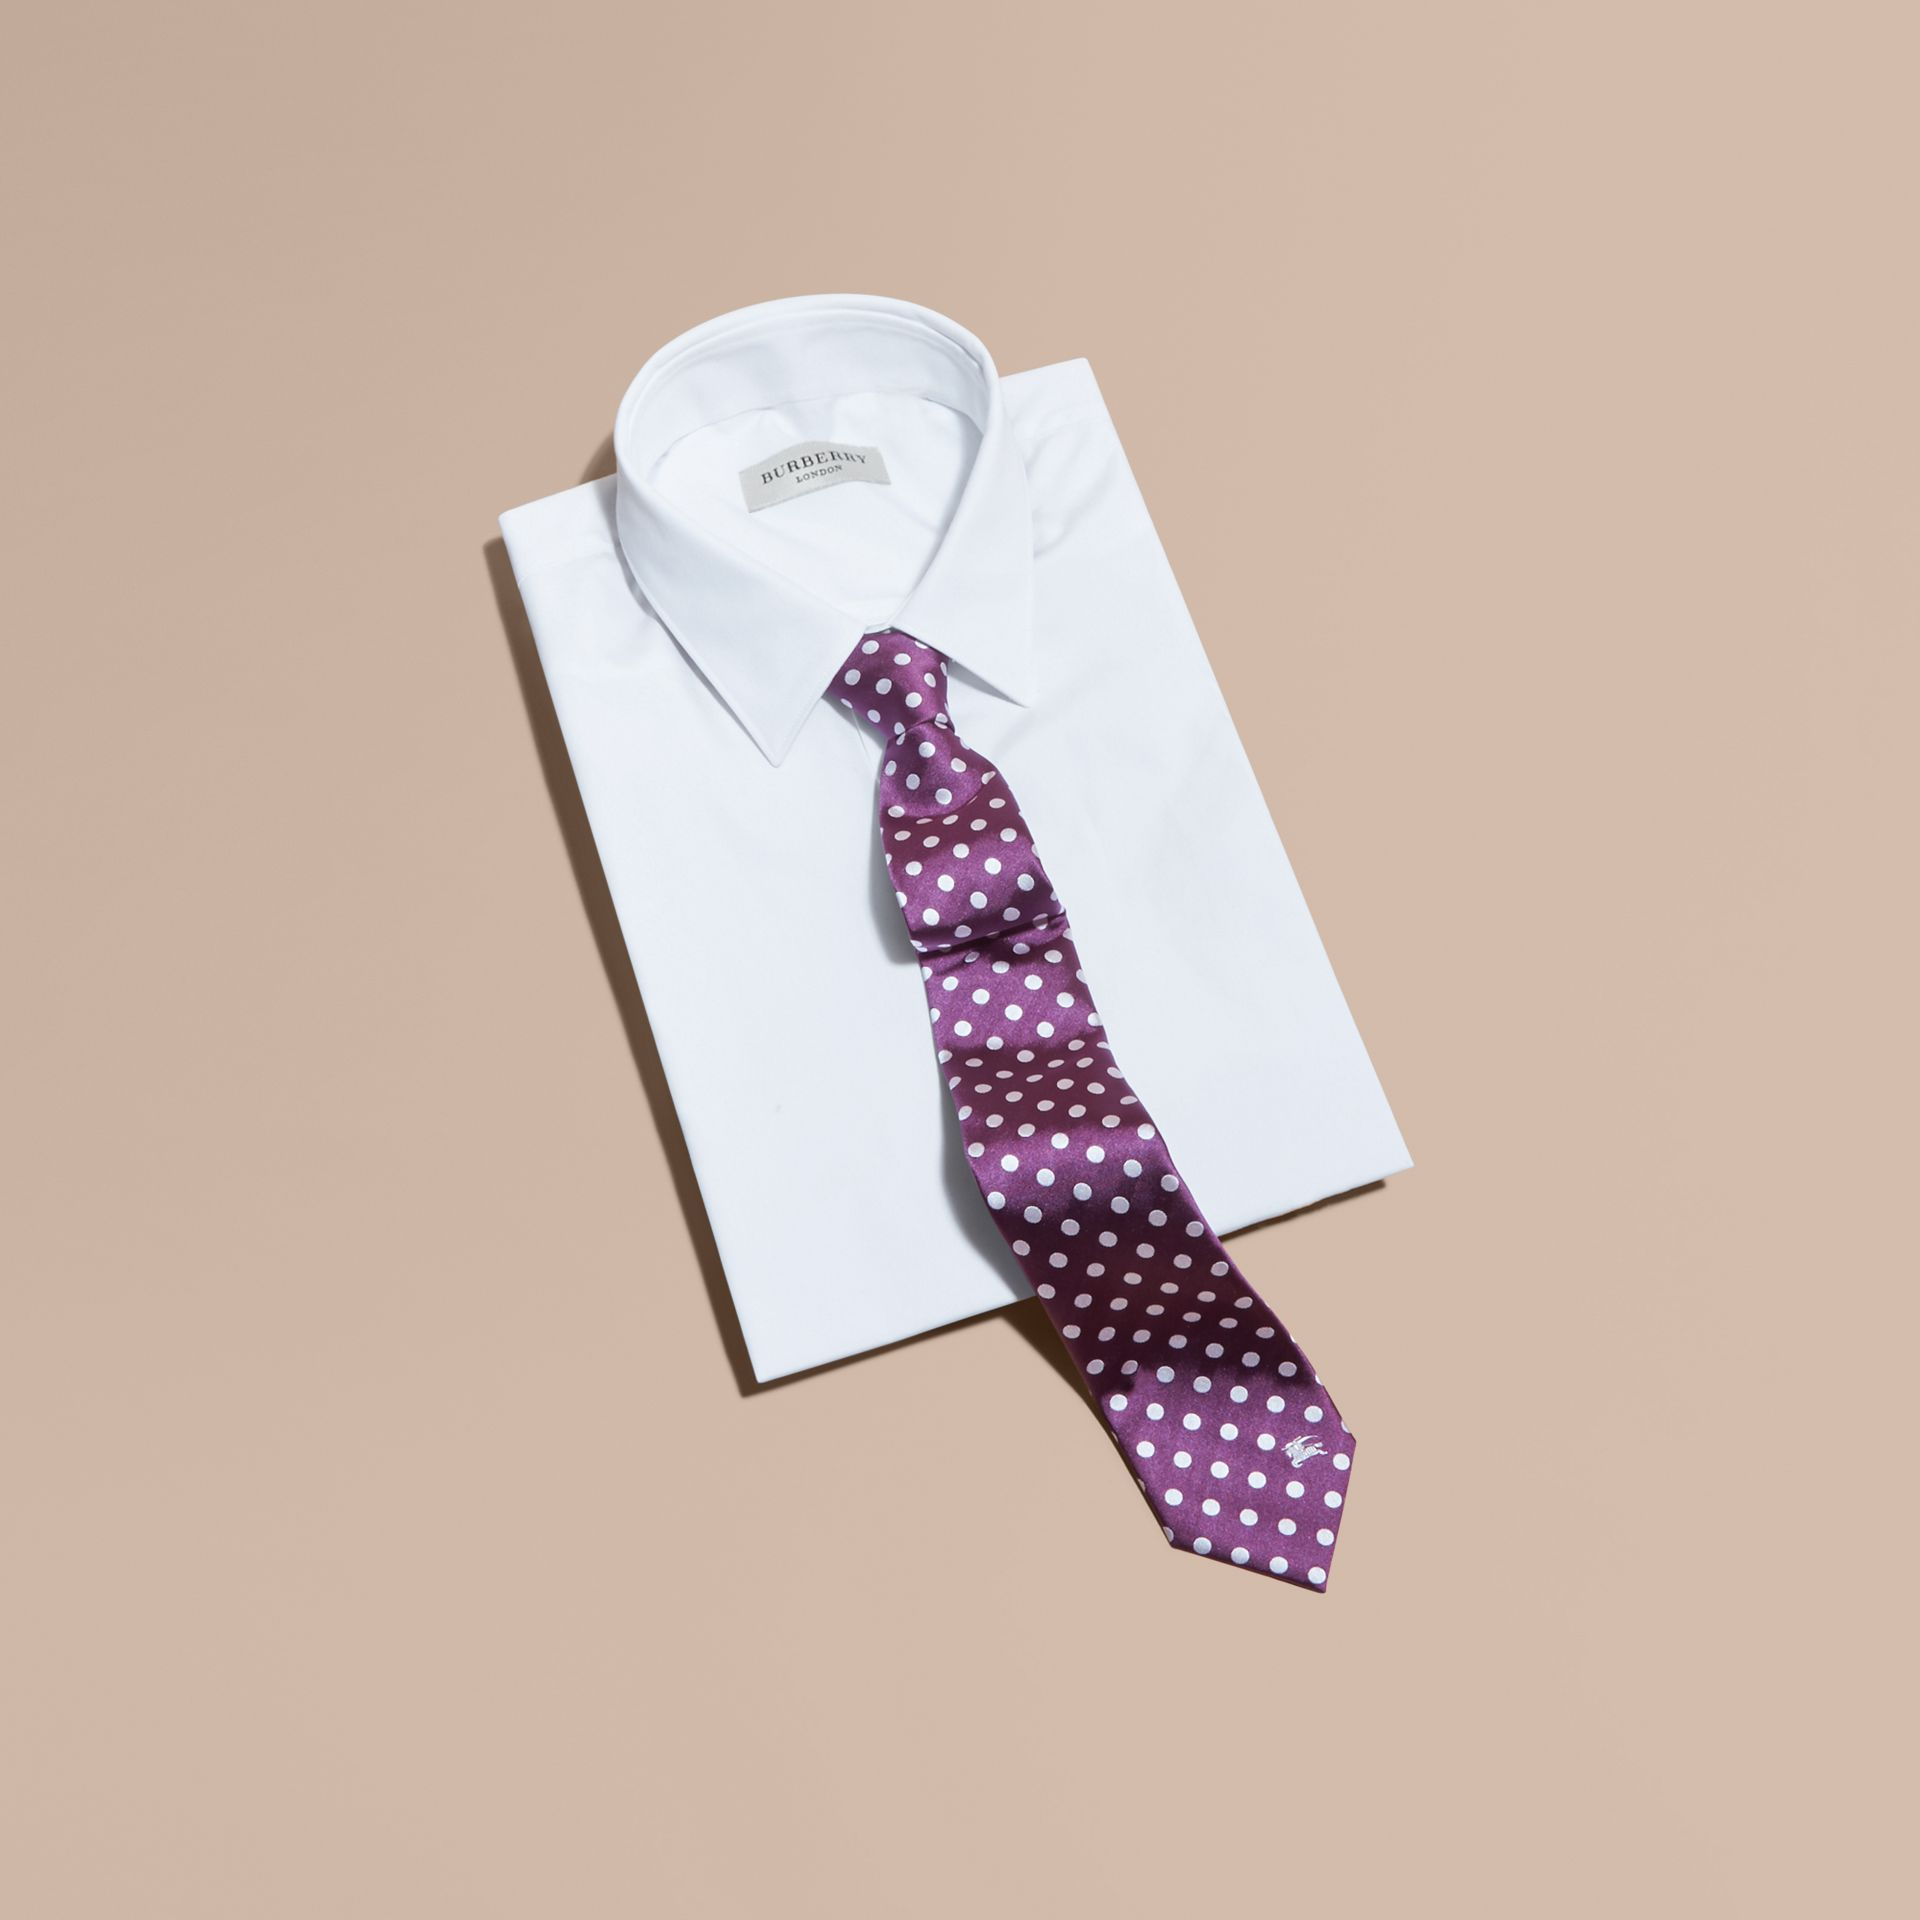 Modern Cut Polka-dot Silk Jacquard Tie in Purple Black - Men | Burberry - gallery image 4